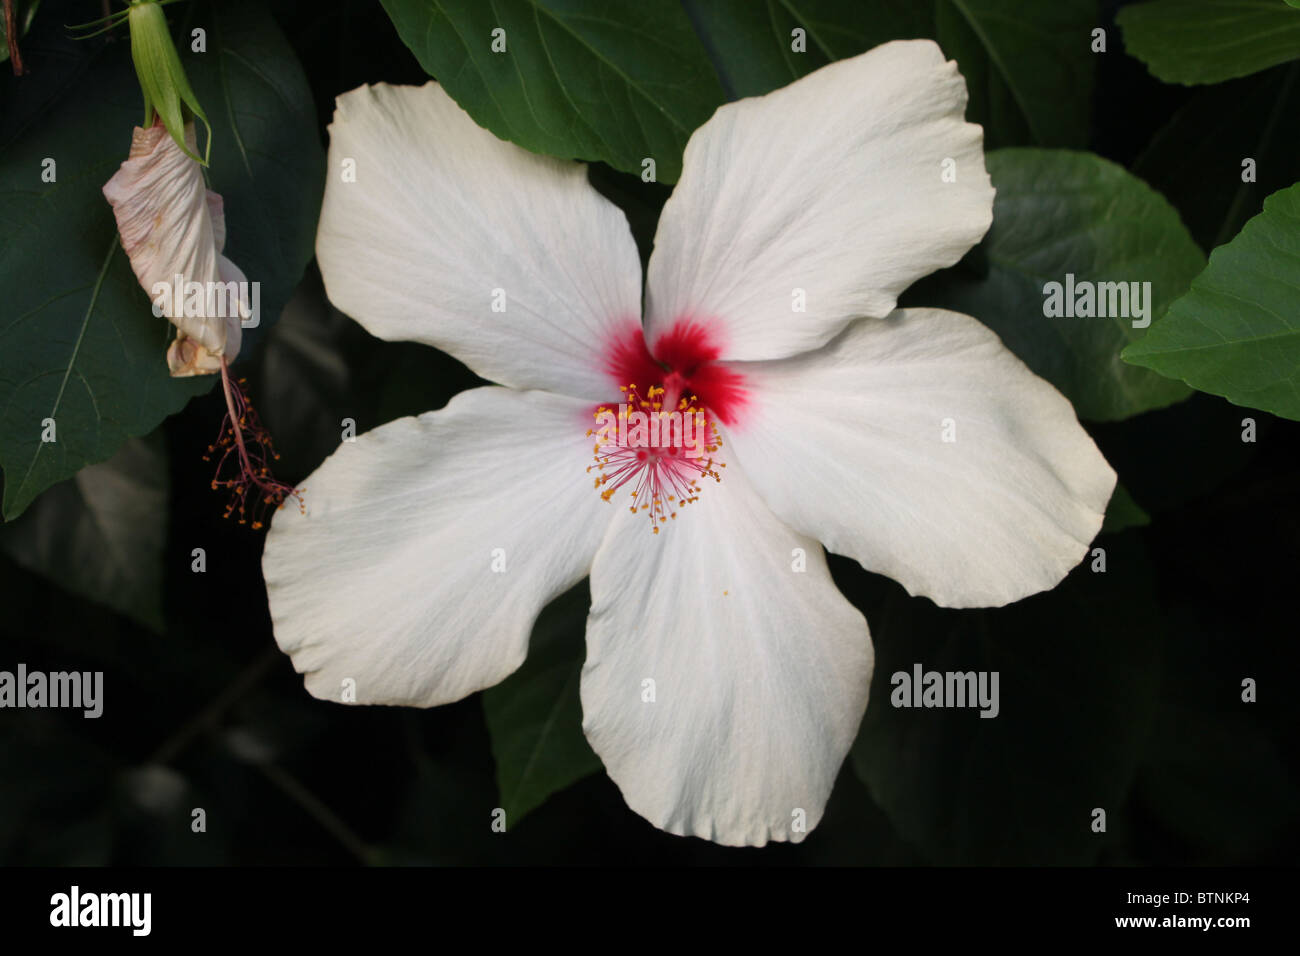 Flower white jamaica stock photos flower white jamaica stock white hibiscus flower stock image izmirmasajfo